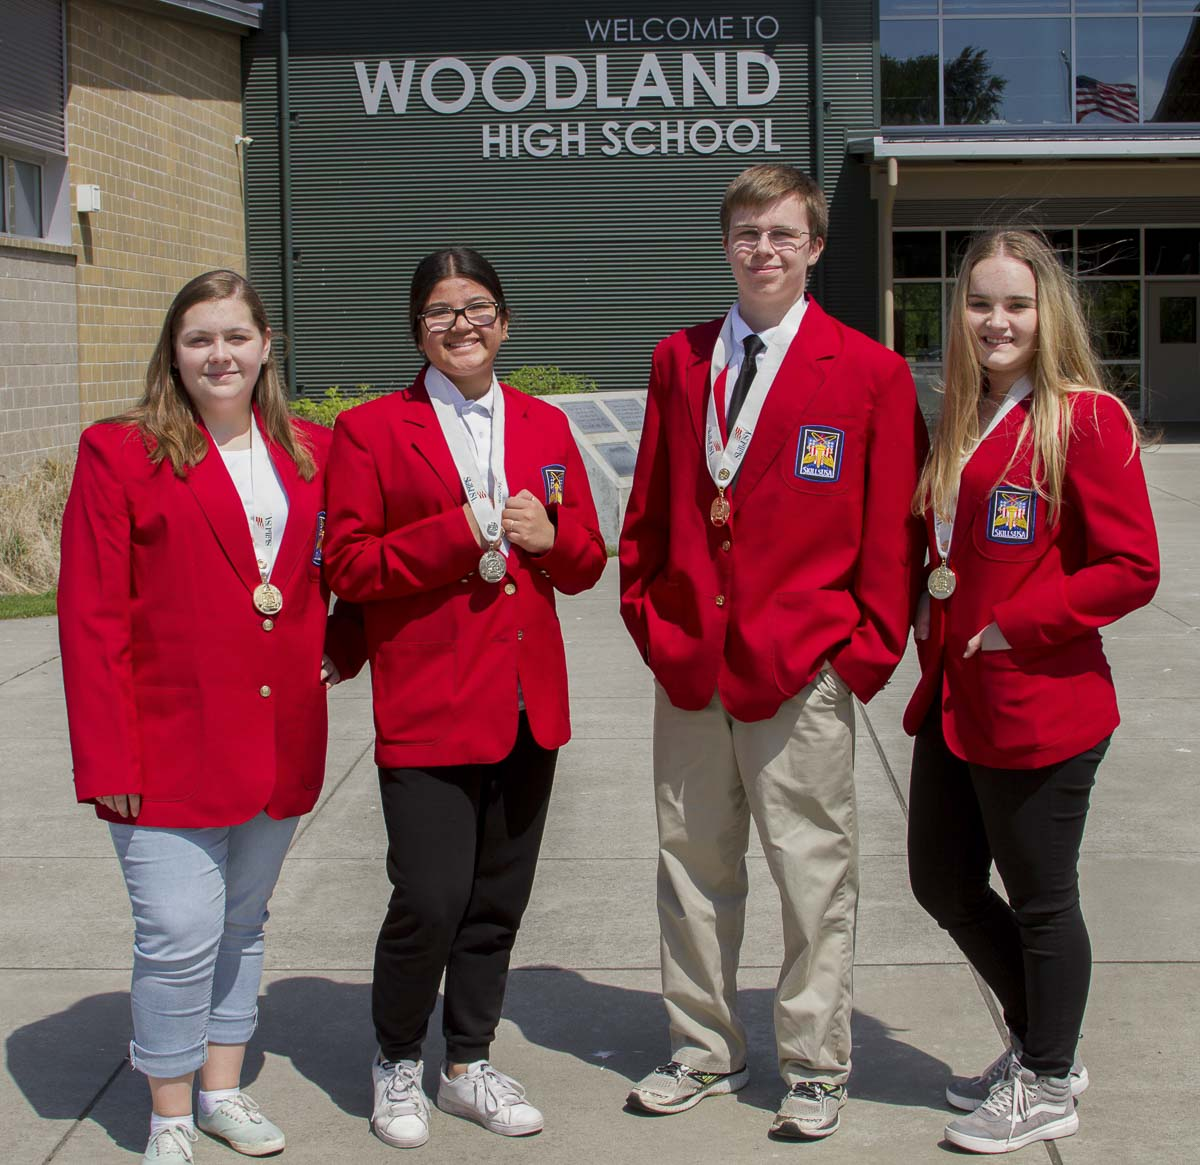 SkillsUSA team members pick from 100 specific areas of workplace expertise ranging from early childhood education and public speaking to customer service and technology literacy. Woodland High School's SkillsUSA medal winners (from left to right): Katelyn Paulson, Camila Avelar, Caleb Mouat and Brooke Schimmel. Photo courtesy of Woodland School District